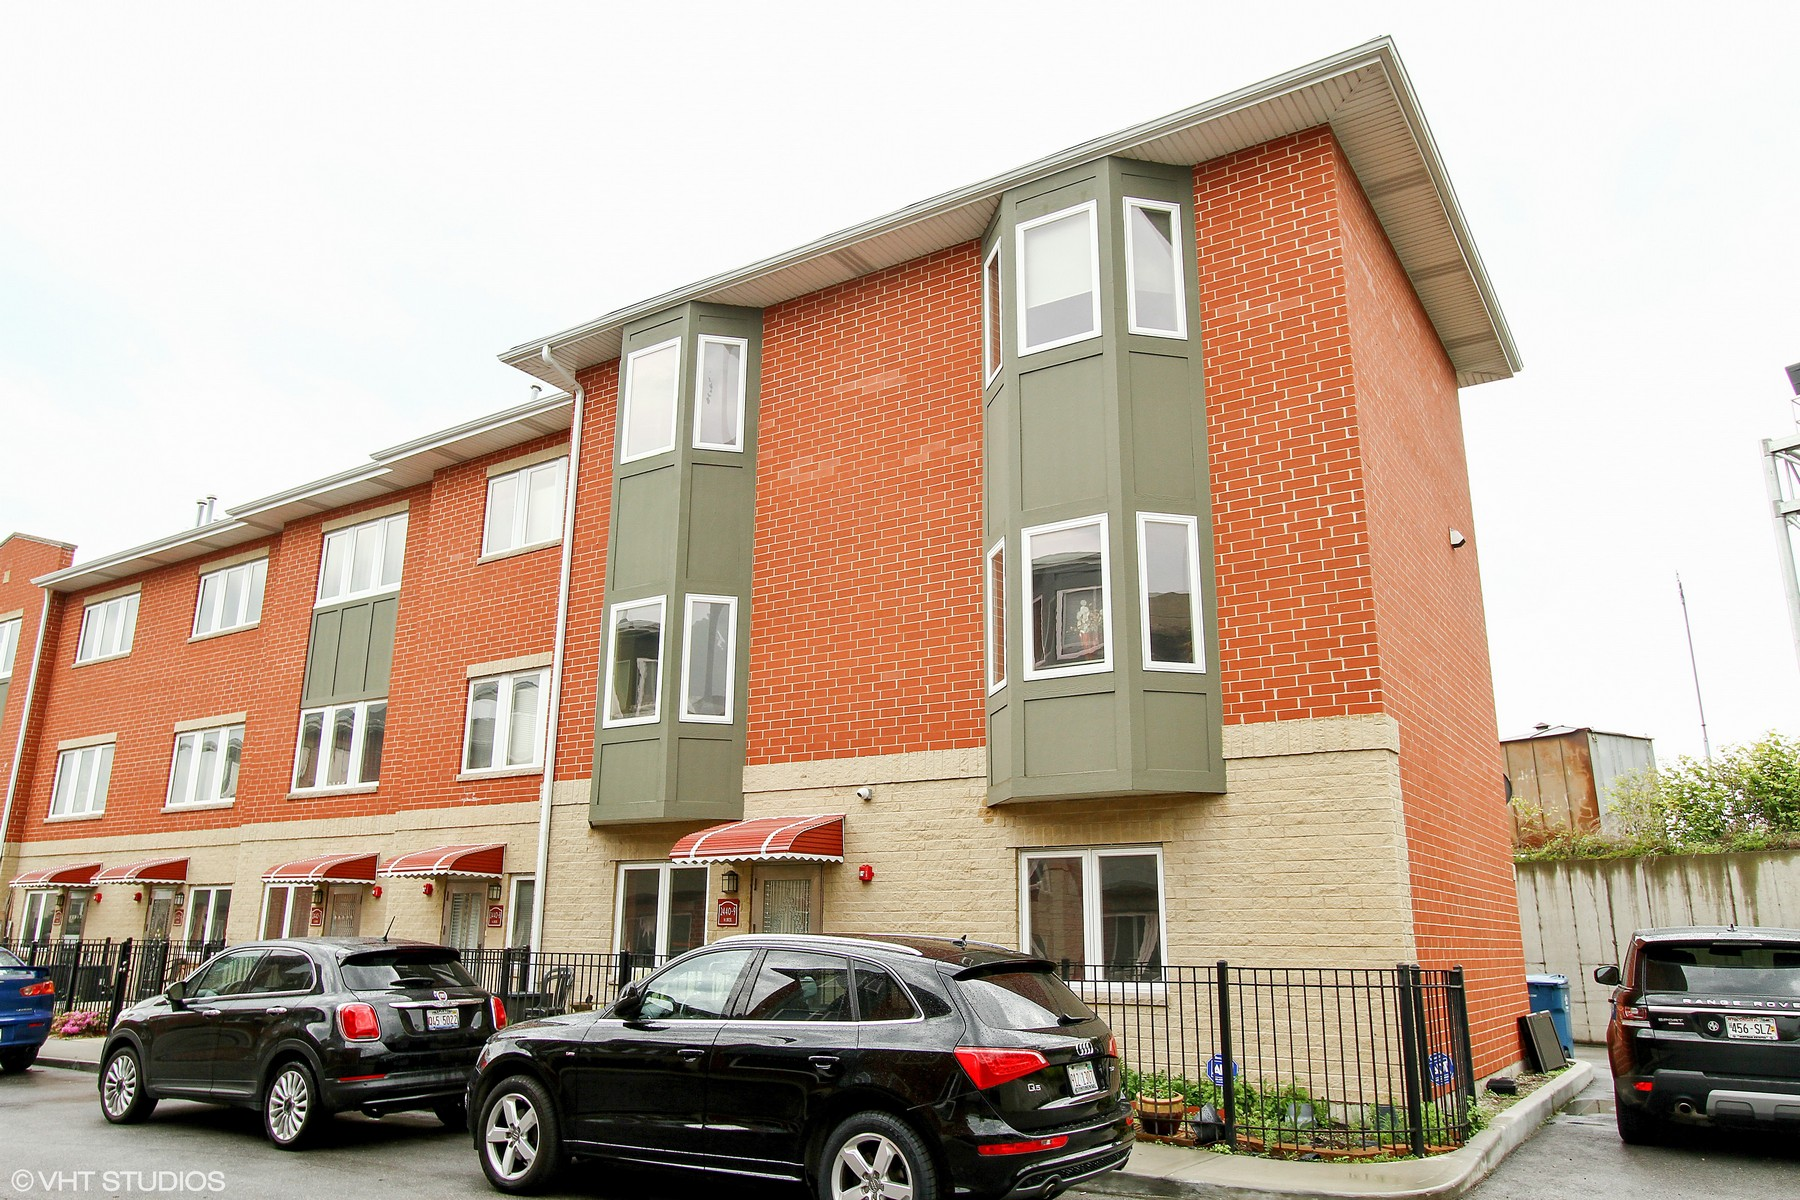 Townhouse for Sale at McKinley Gardens Townhome 2440 W Bross Avenue Unit 9, Chicago, Illinois, 60608 United States